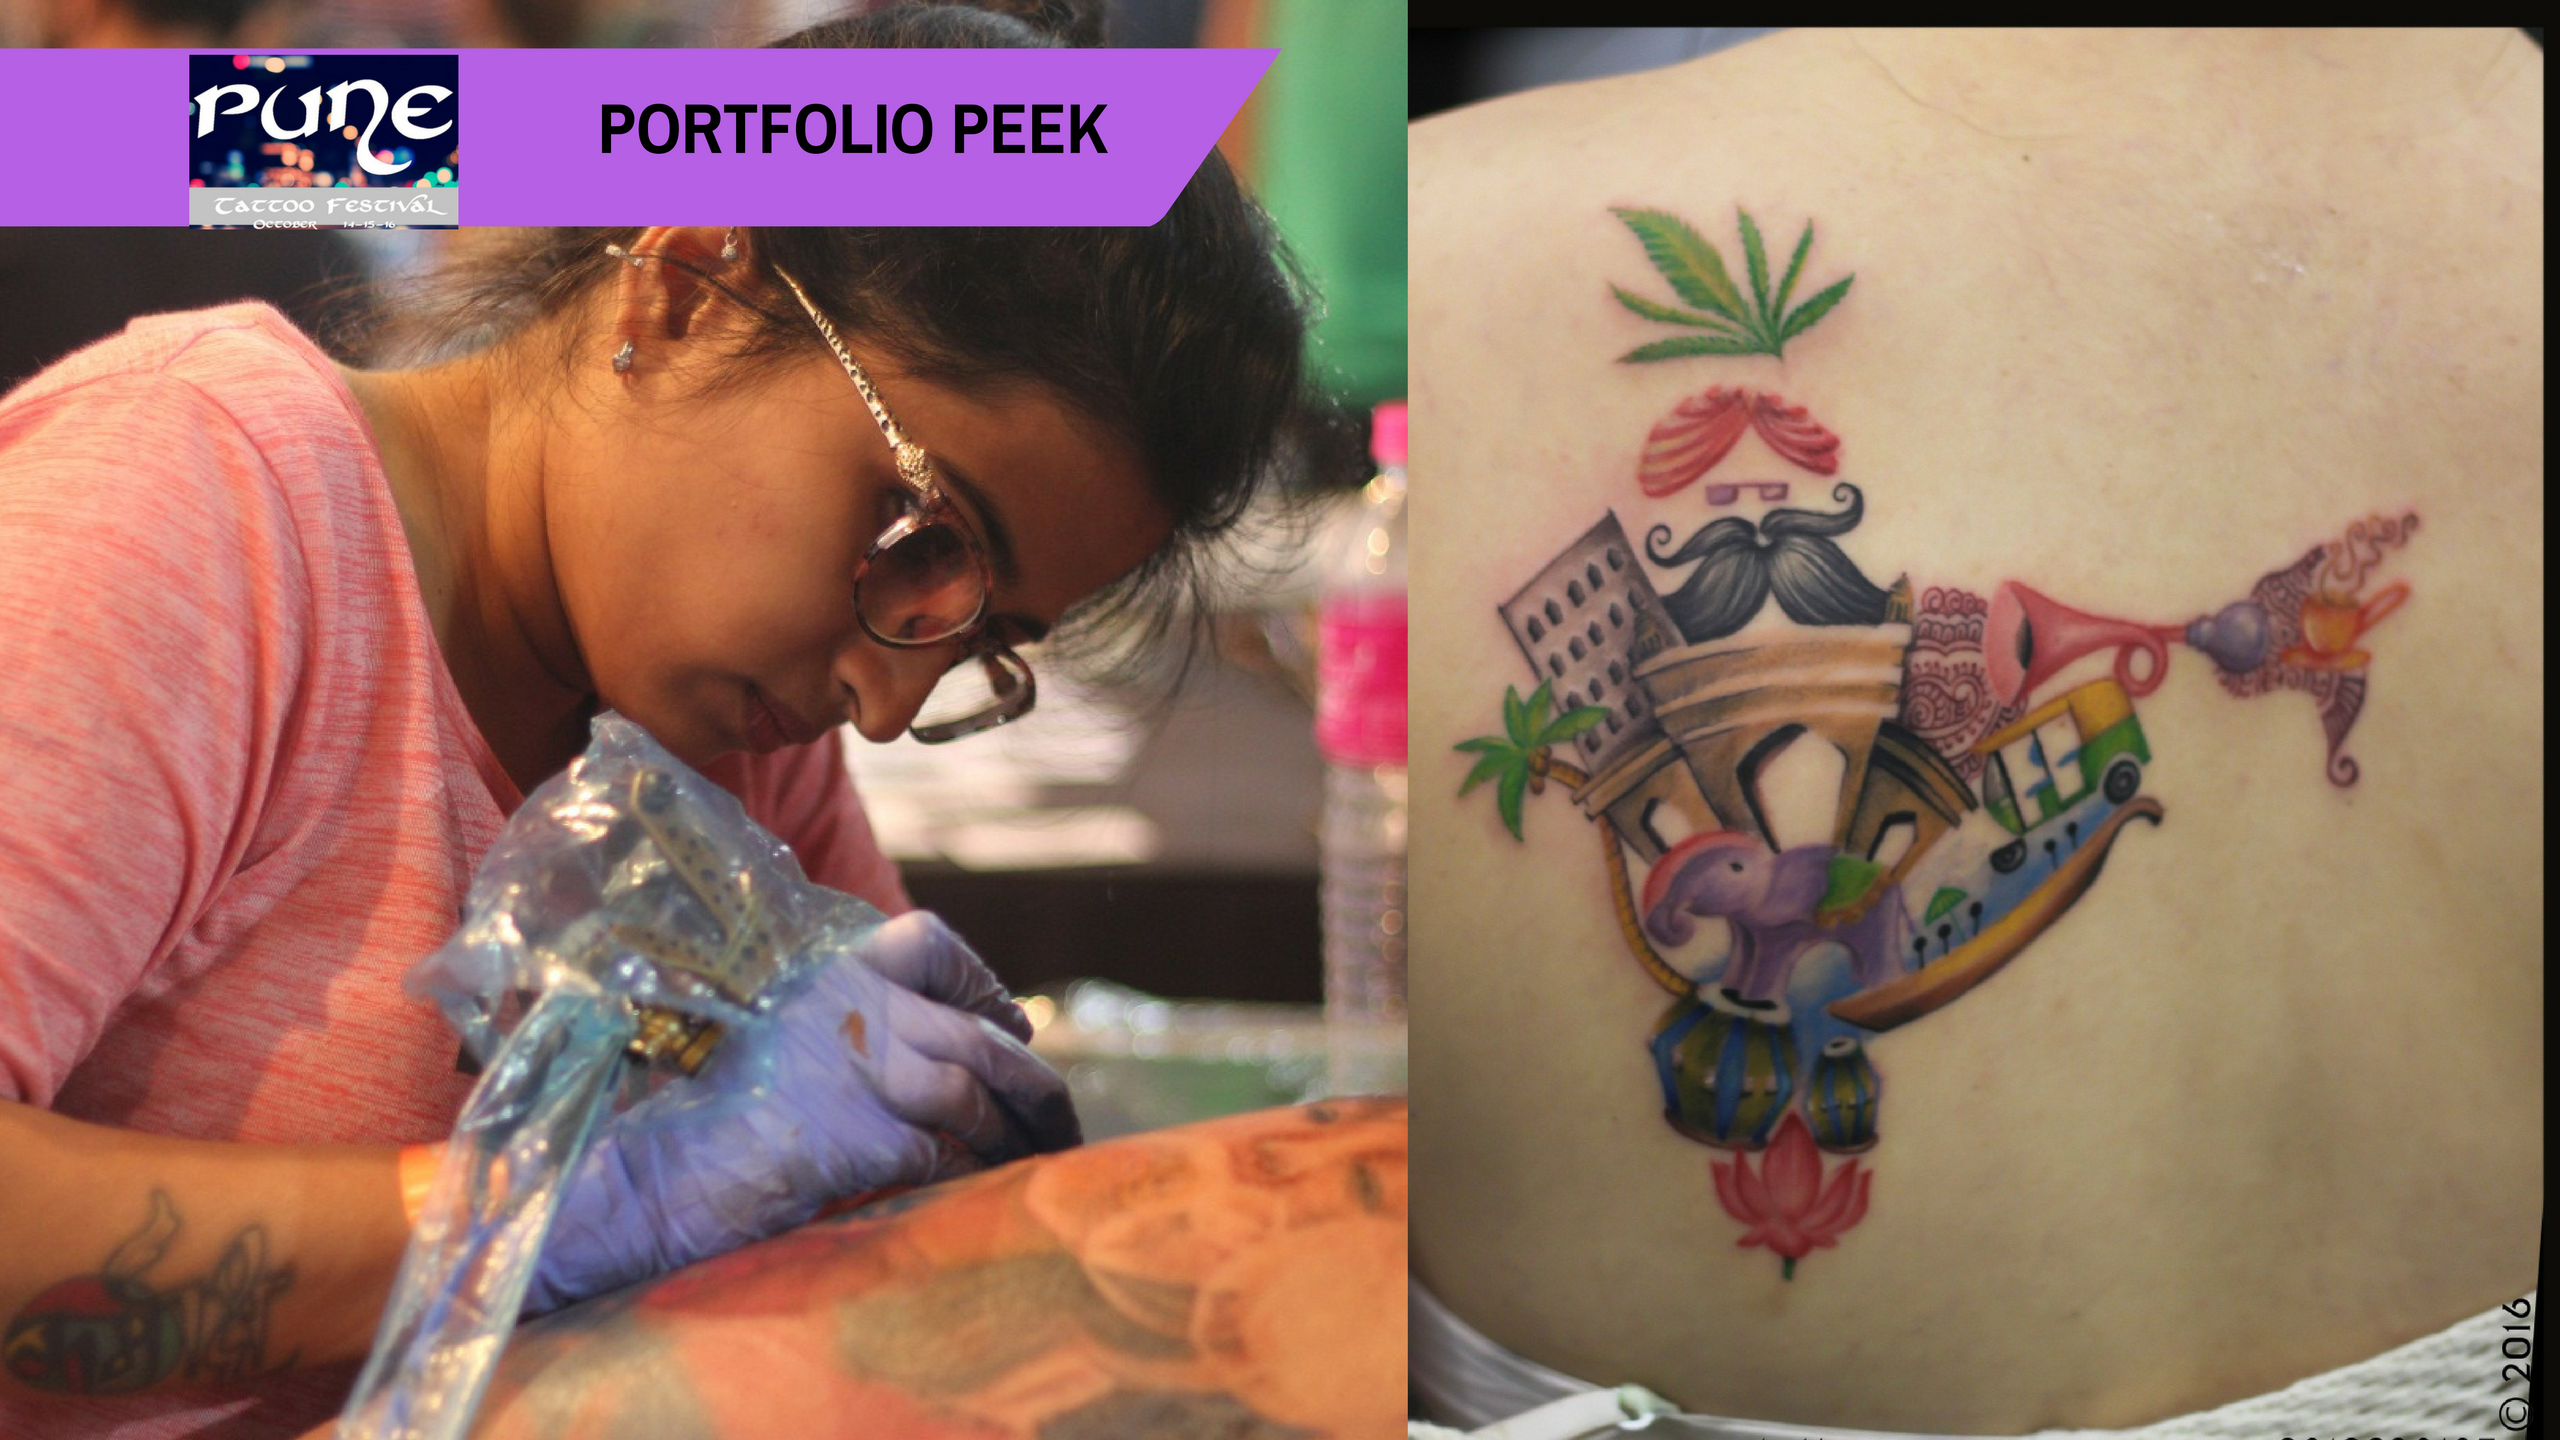 Pune Tattoo Fest Portfolio Peek: Archana Bhanushali's madness of colours